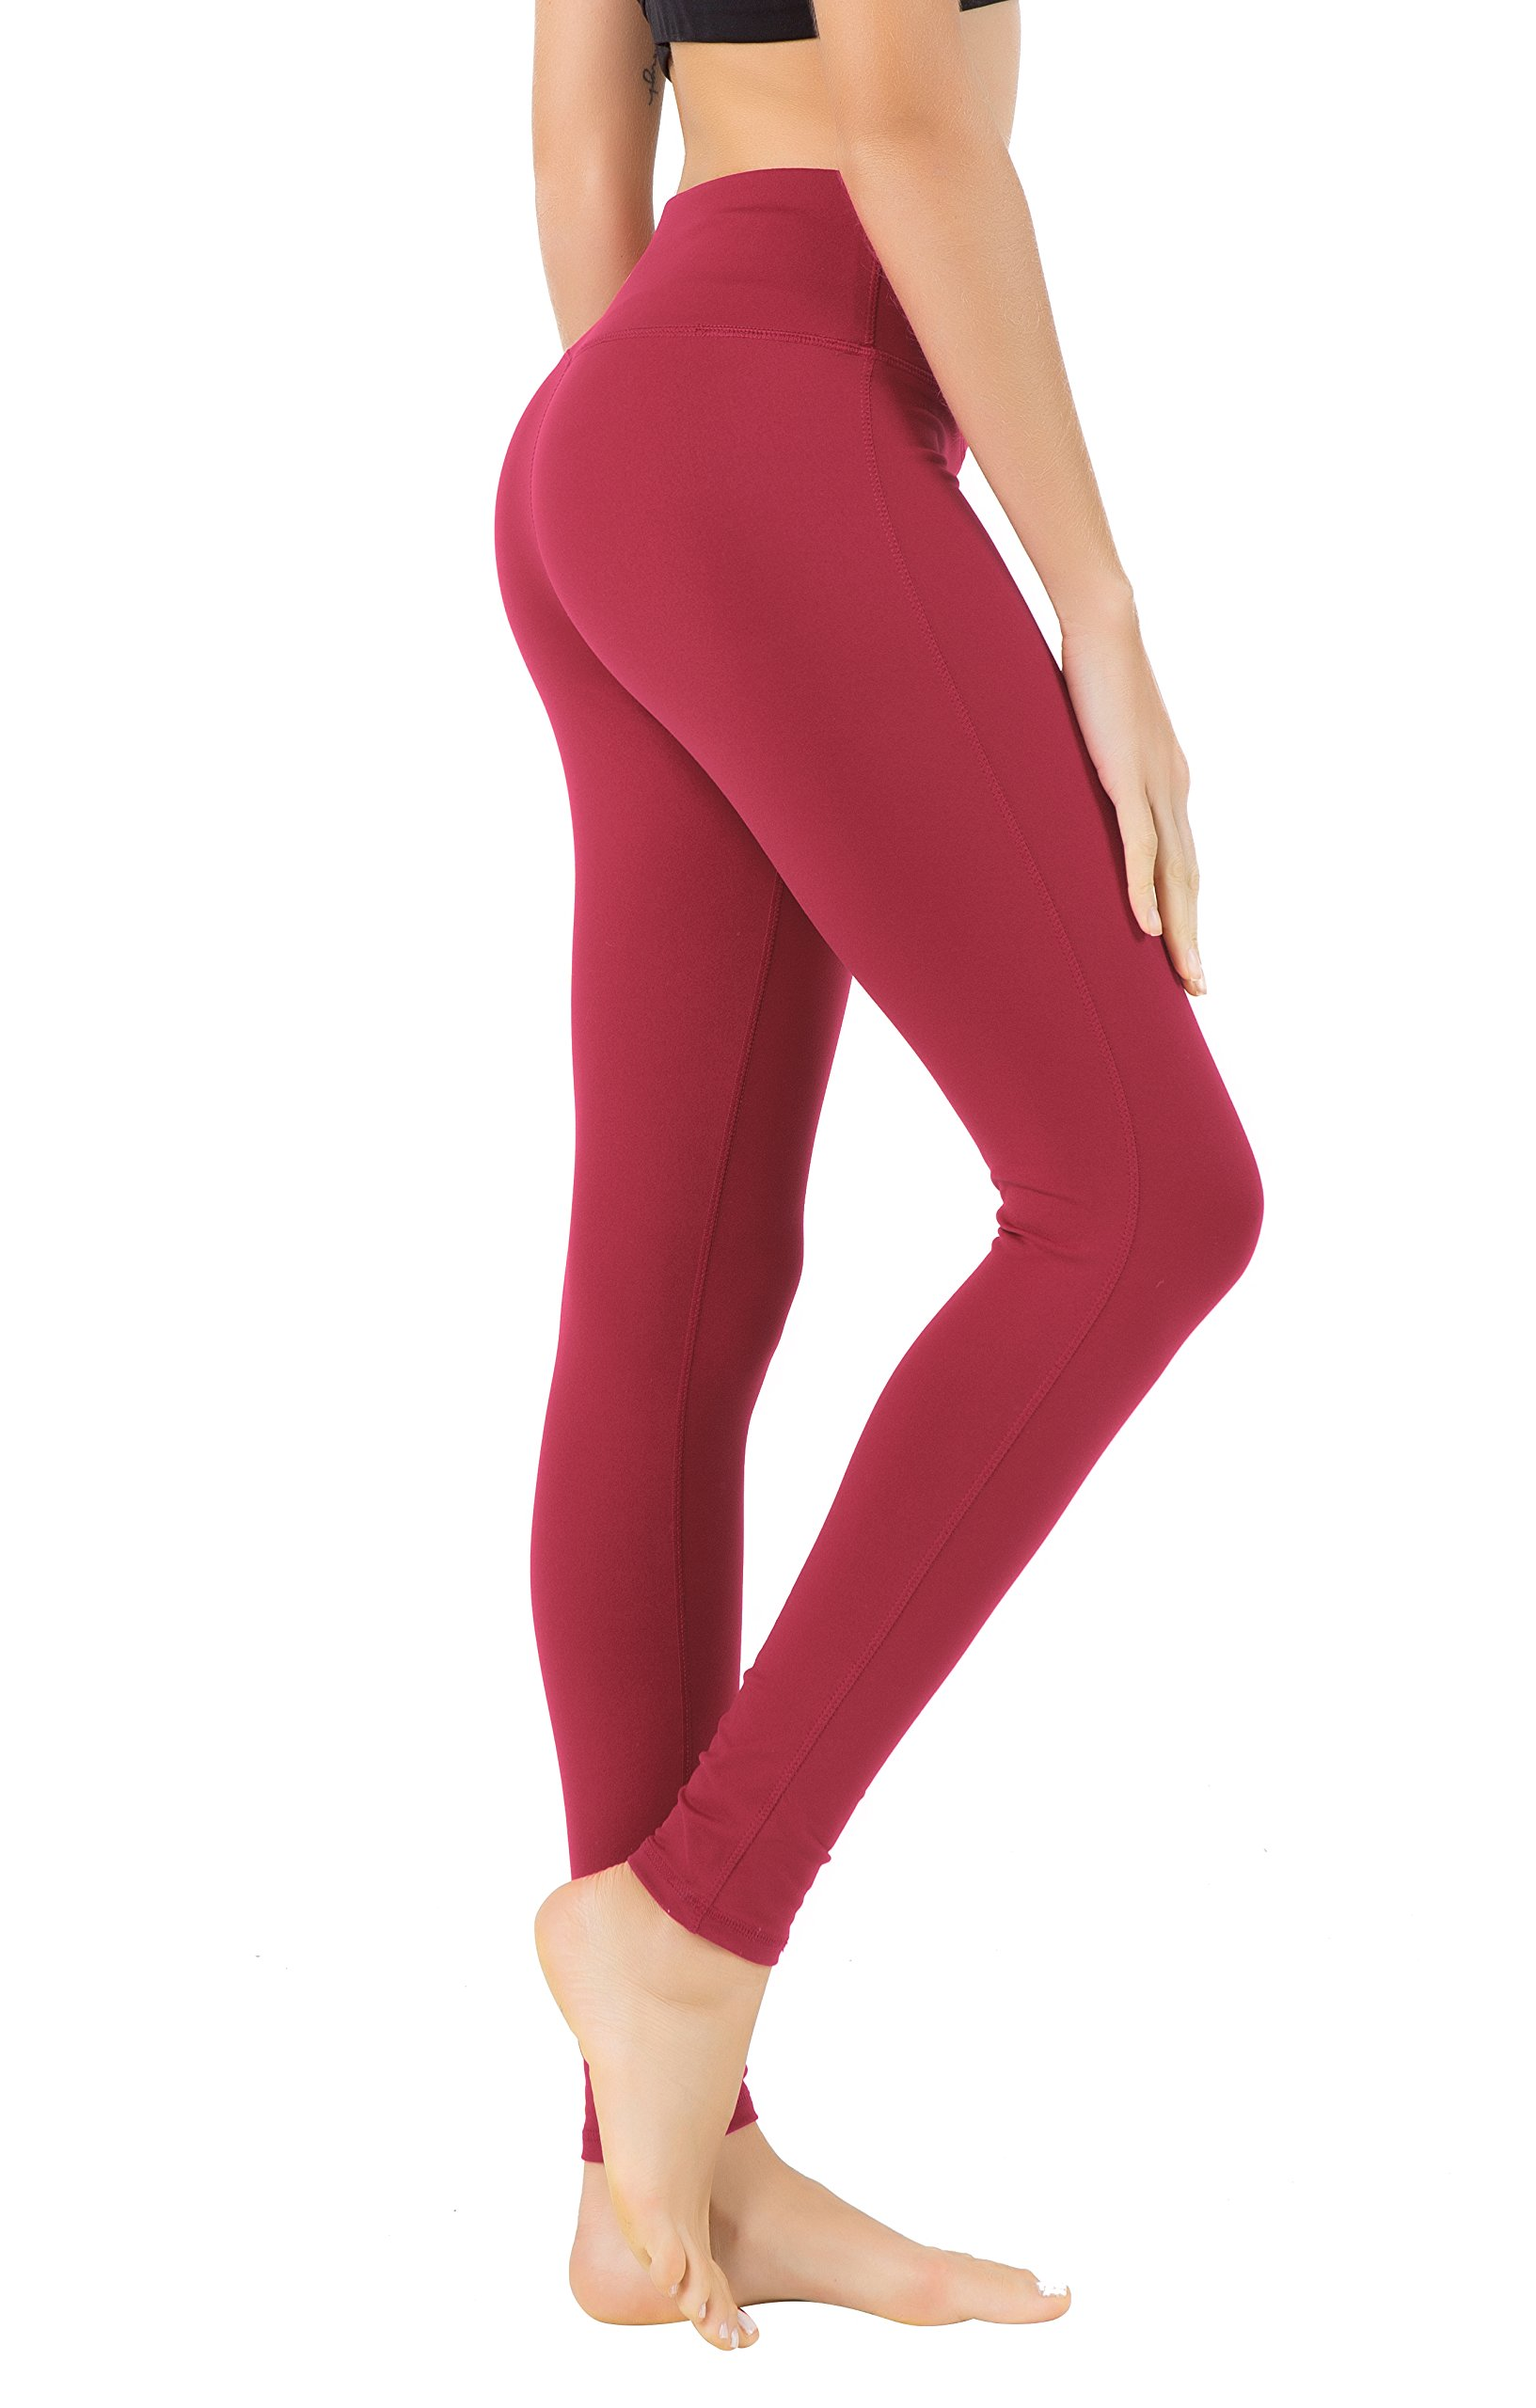 f41326698afeca Galleon - Queenie Ke Women Power Flex Yoga Pants Workout Running Leggings  Size XXL Color Red Long